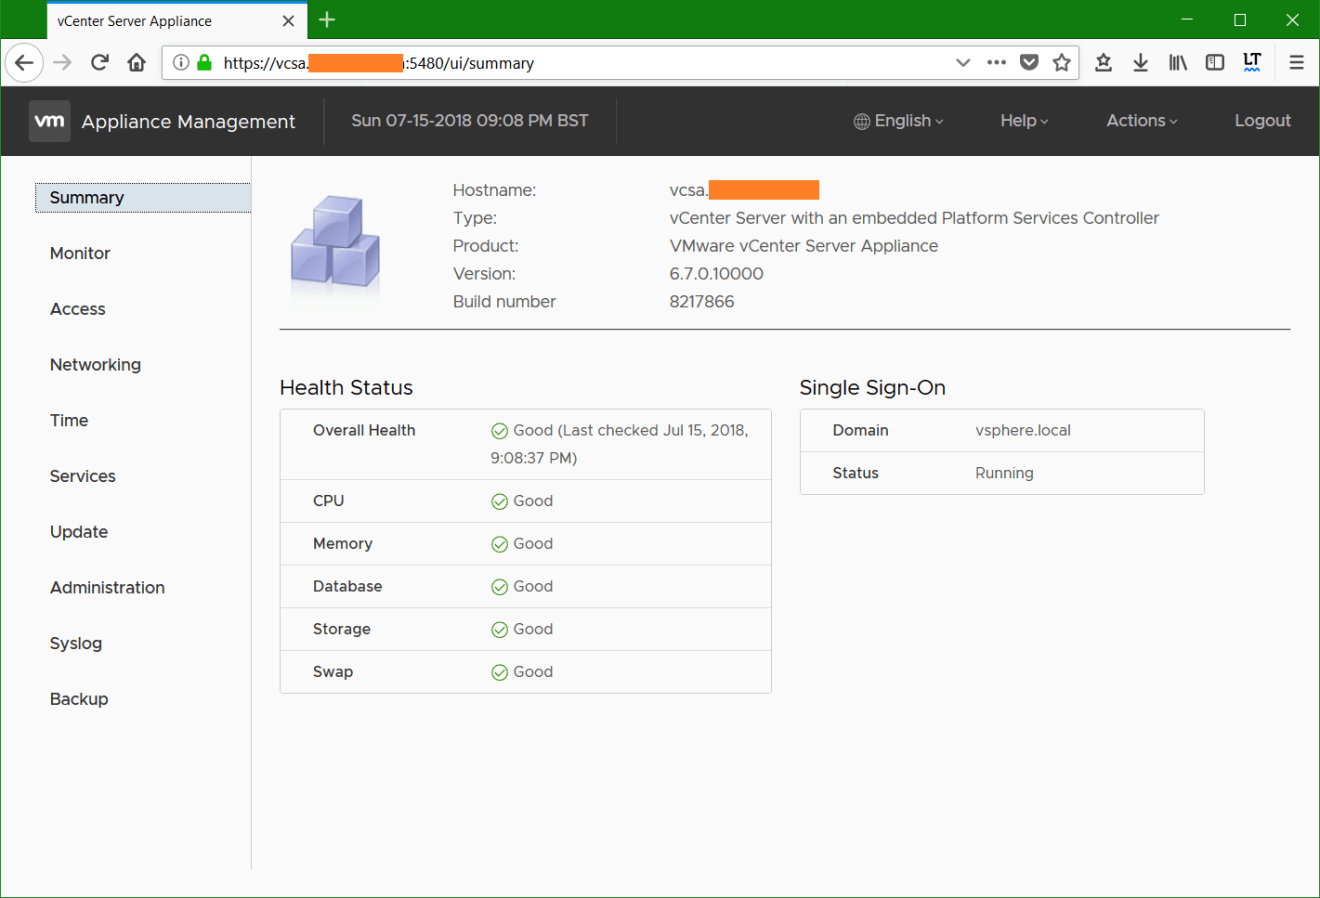 domalab.com vmware vcsa upgrade stage 2 management